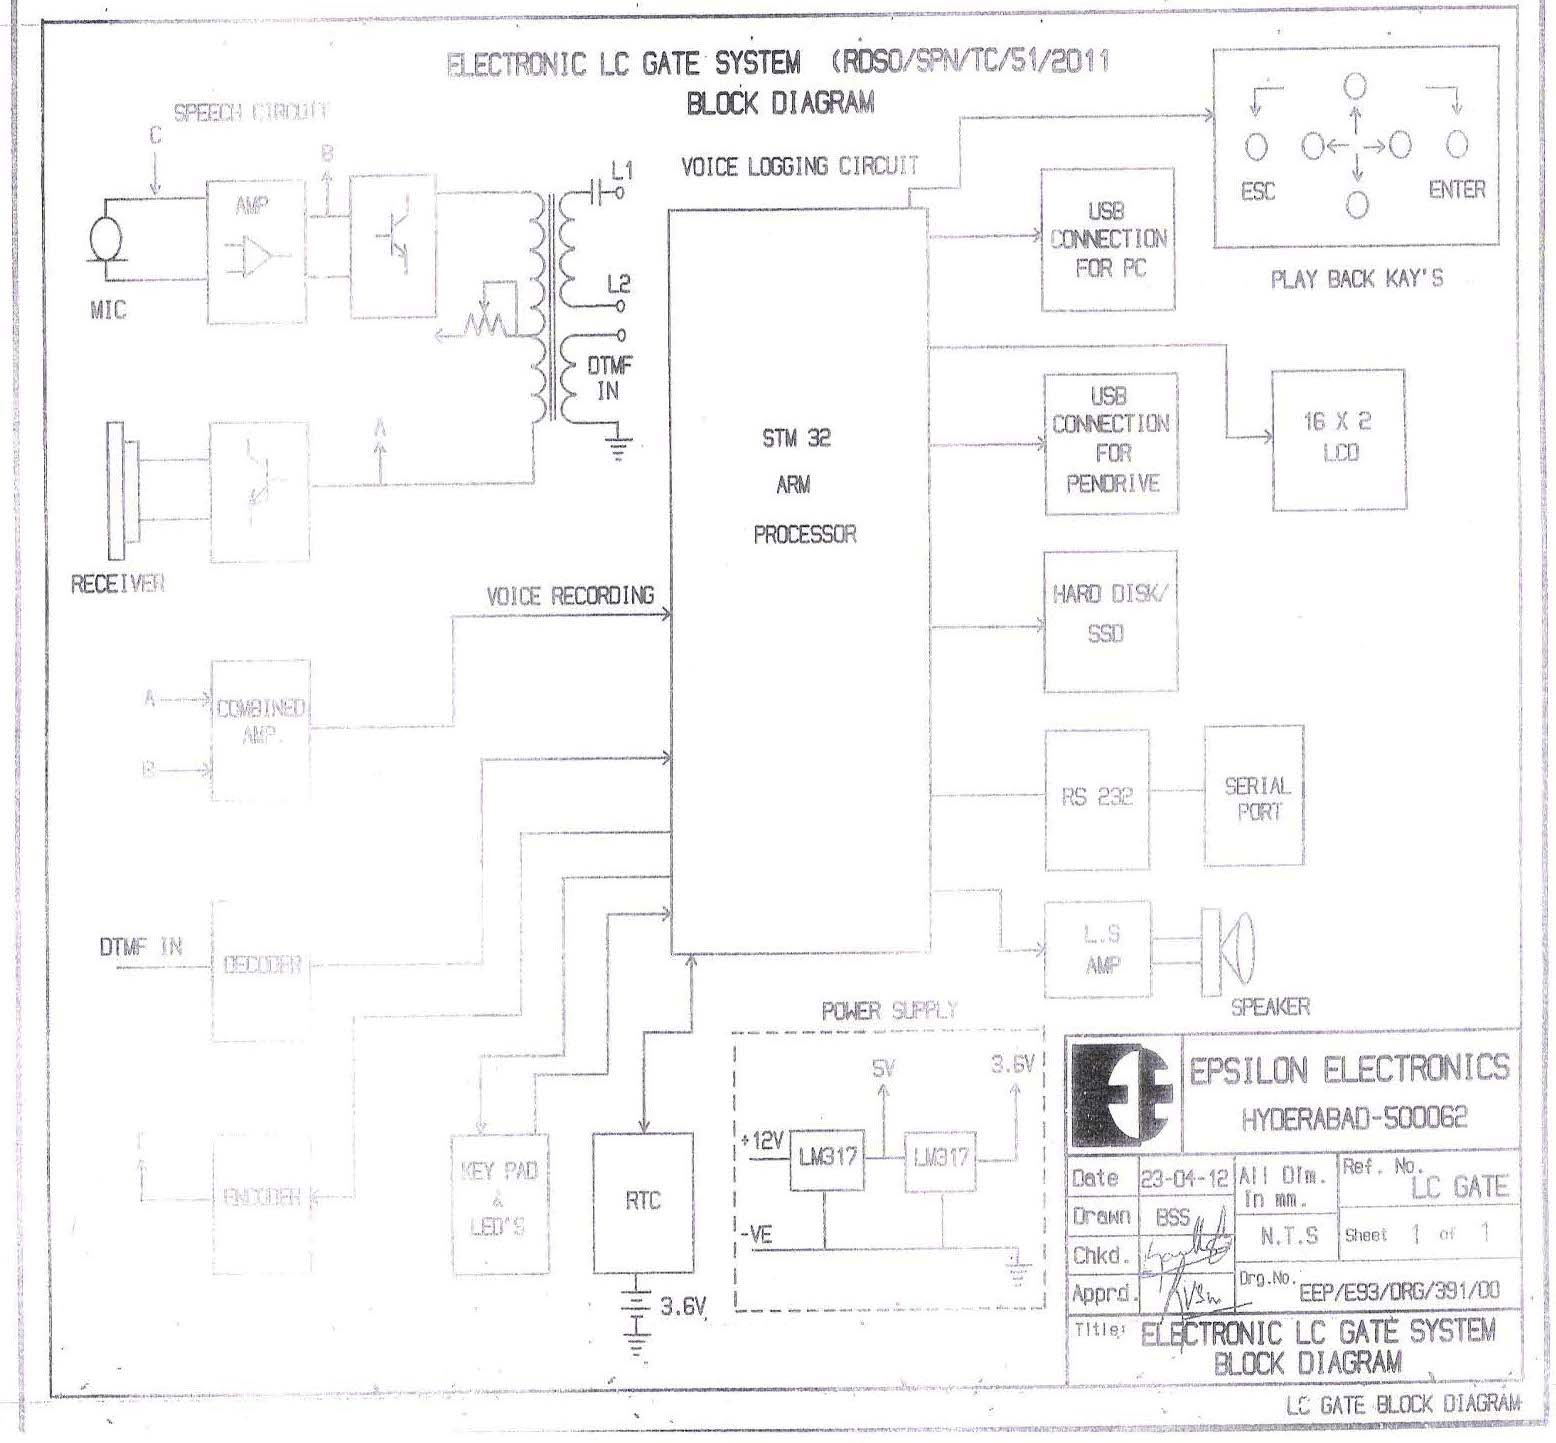 Telecom Products Dtmf Based Fm Remote Control Circuit Diagram Centre Note Please Make Sure That Usb Pen Drive Is Formatted With Fat File System And Sufficient Free Memory Available For The Copy Of Voice Records